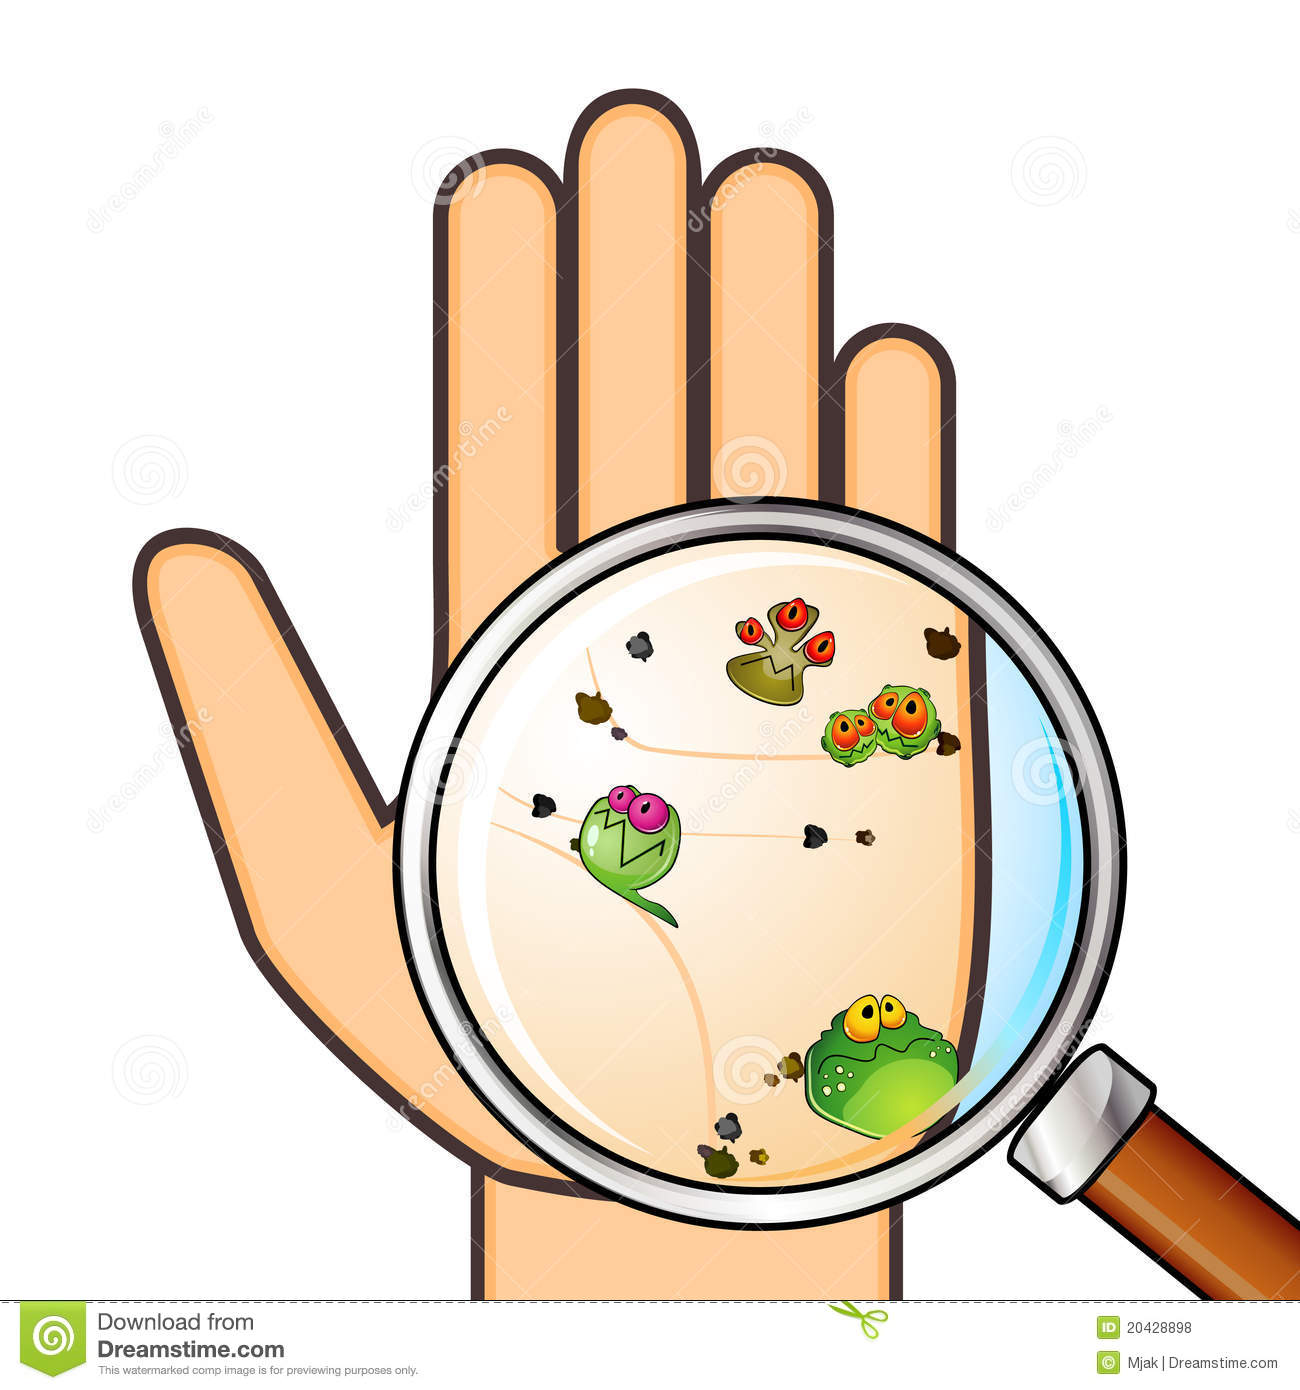 Germ on hands clipart.